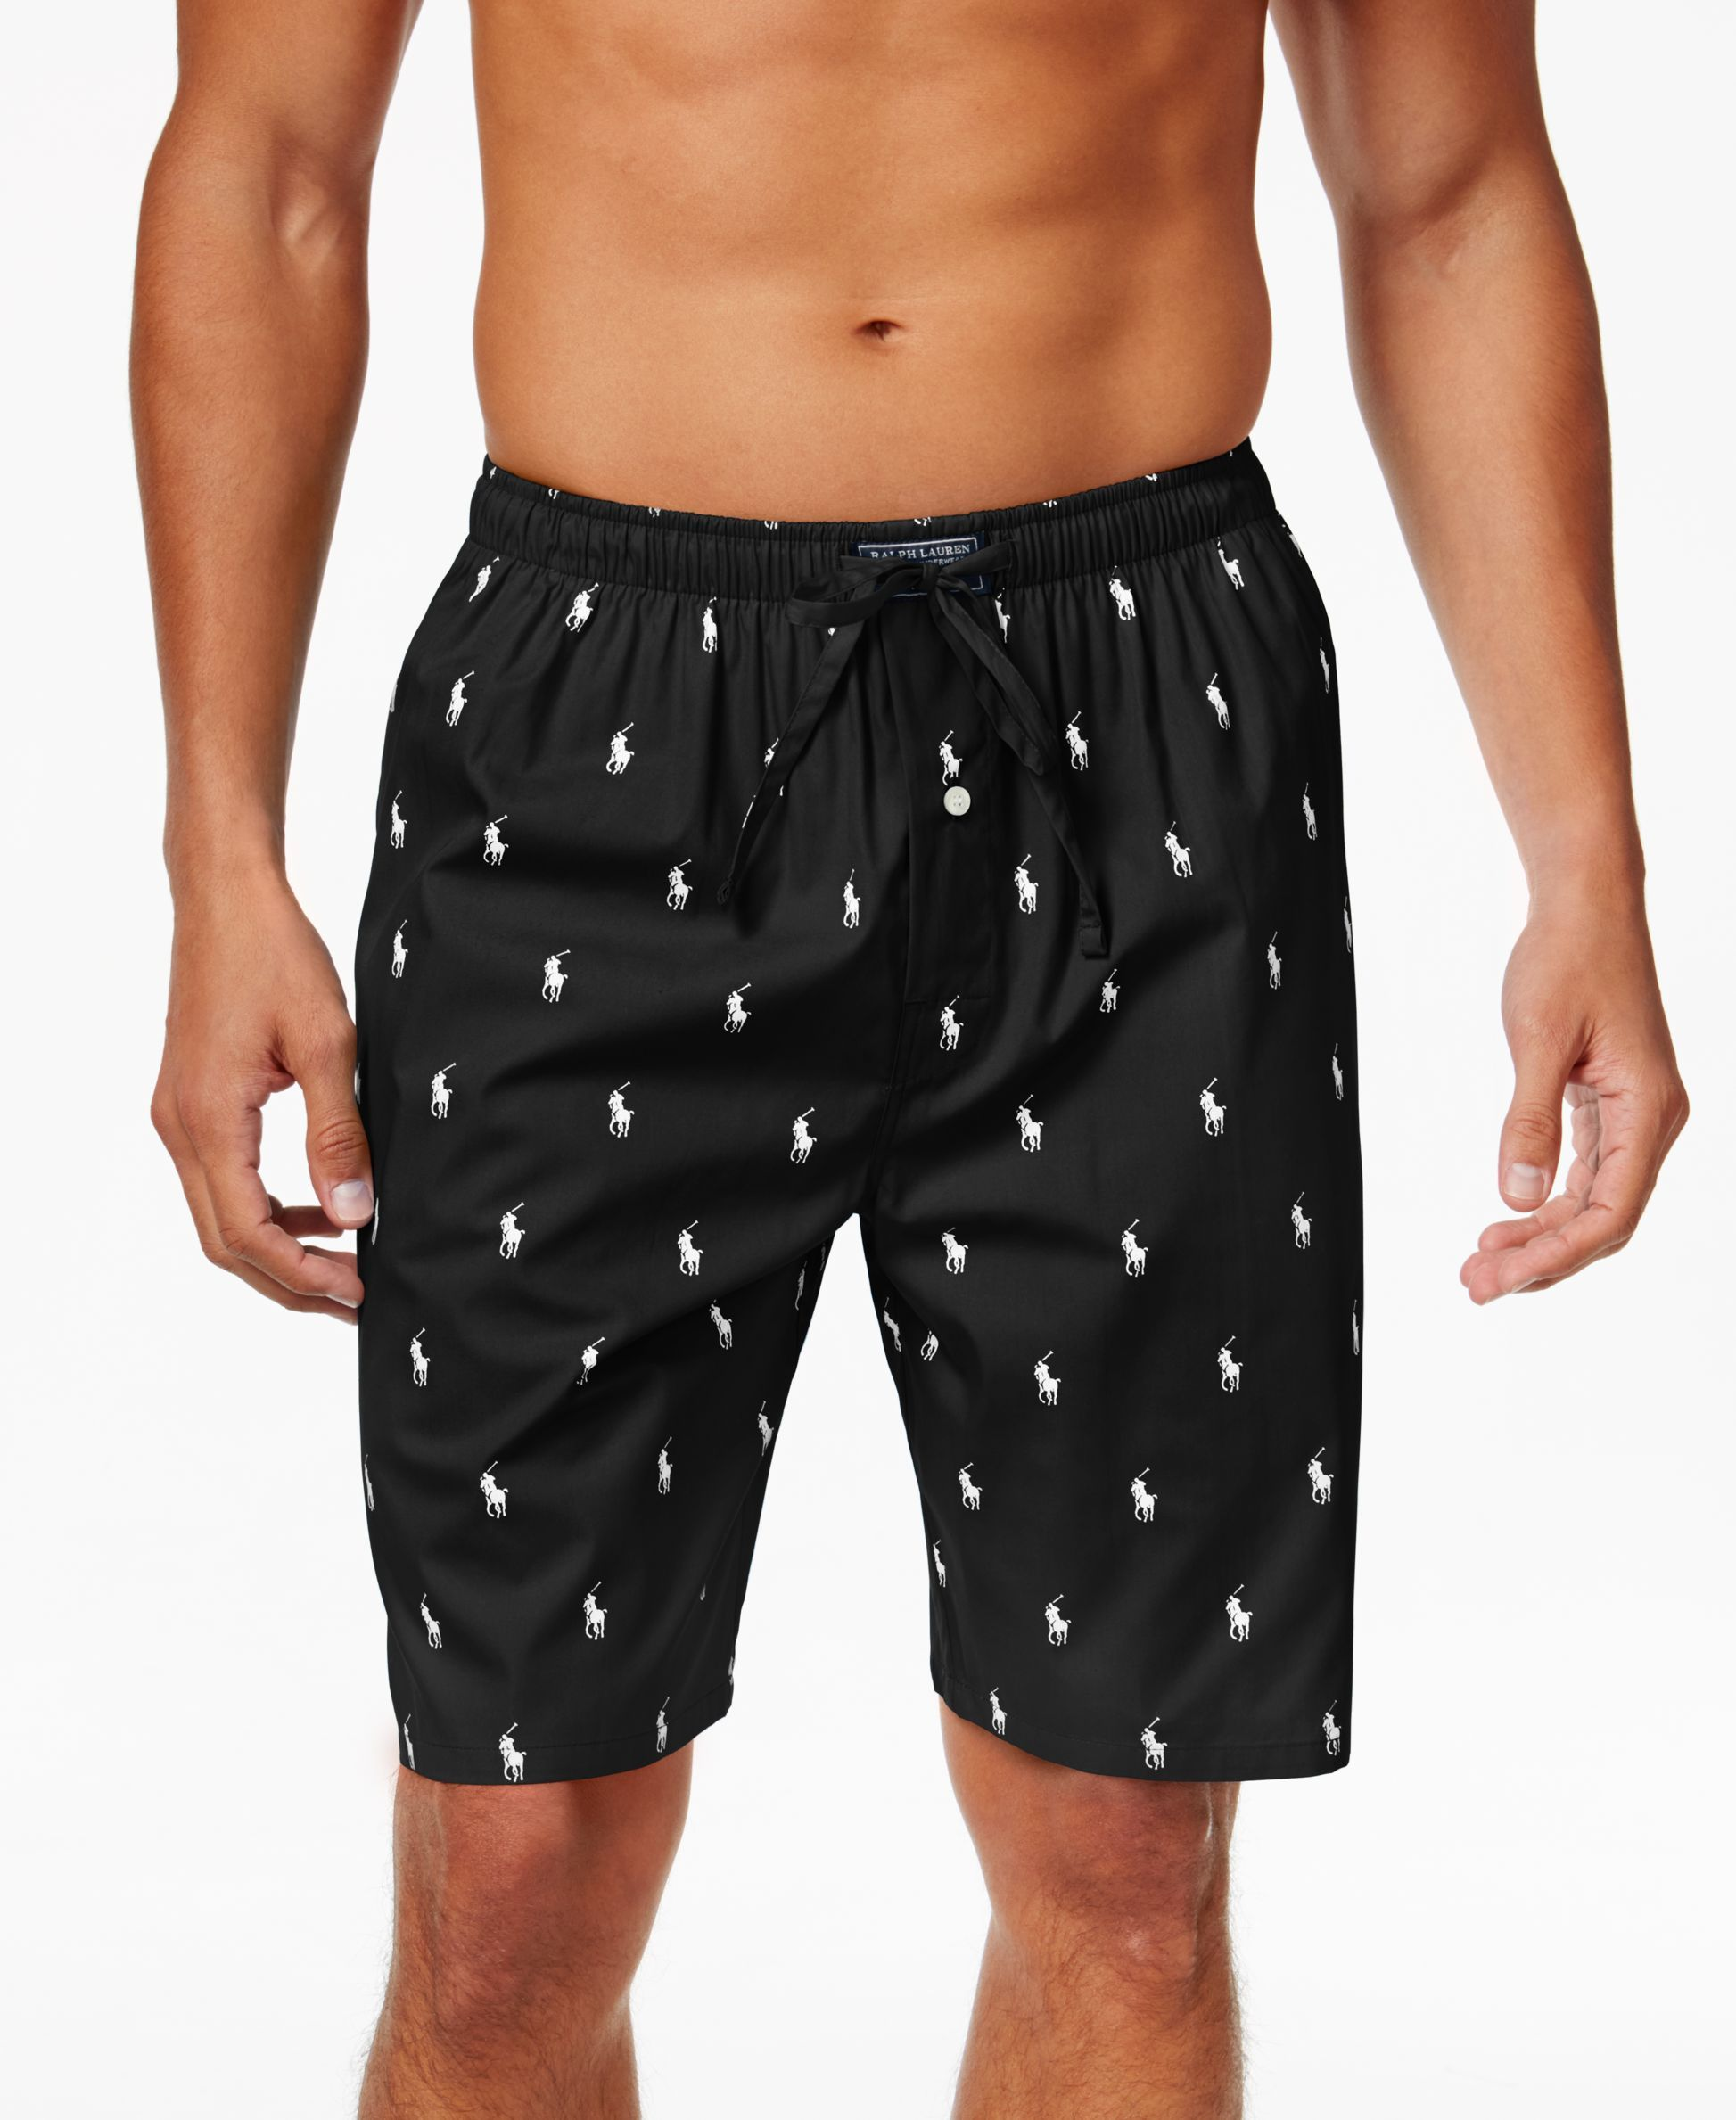 340393a6b0 Polo Ralph Lauren Men's Woven Pony Player Sleep Shorts … | Things ...